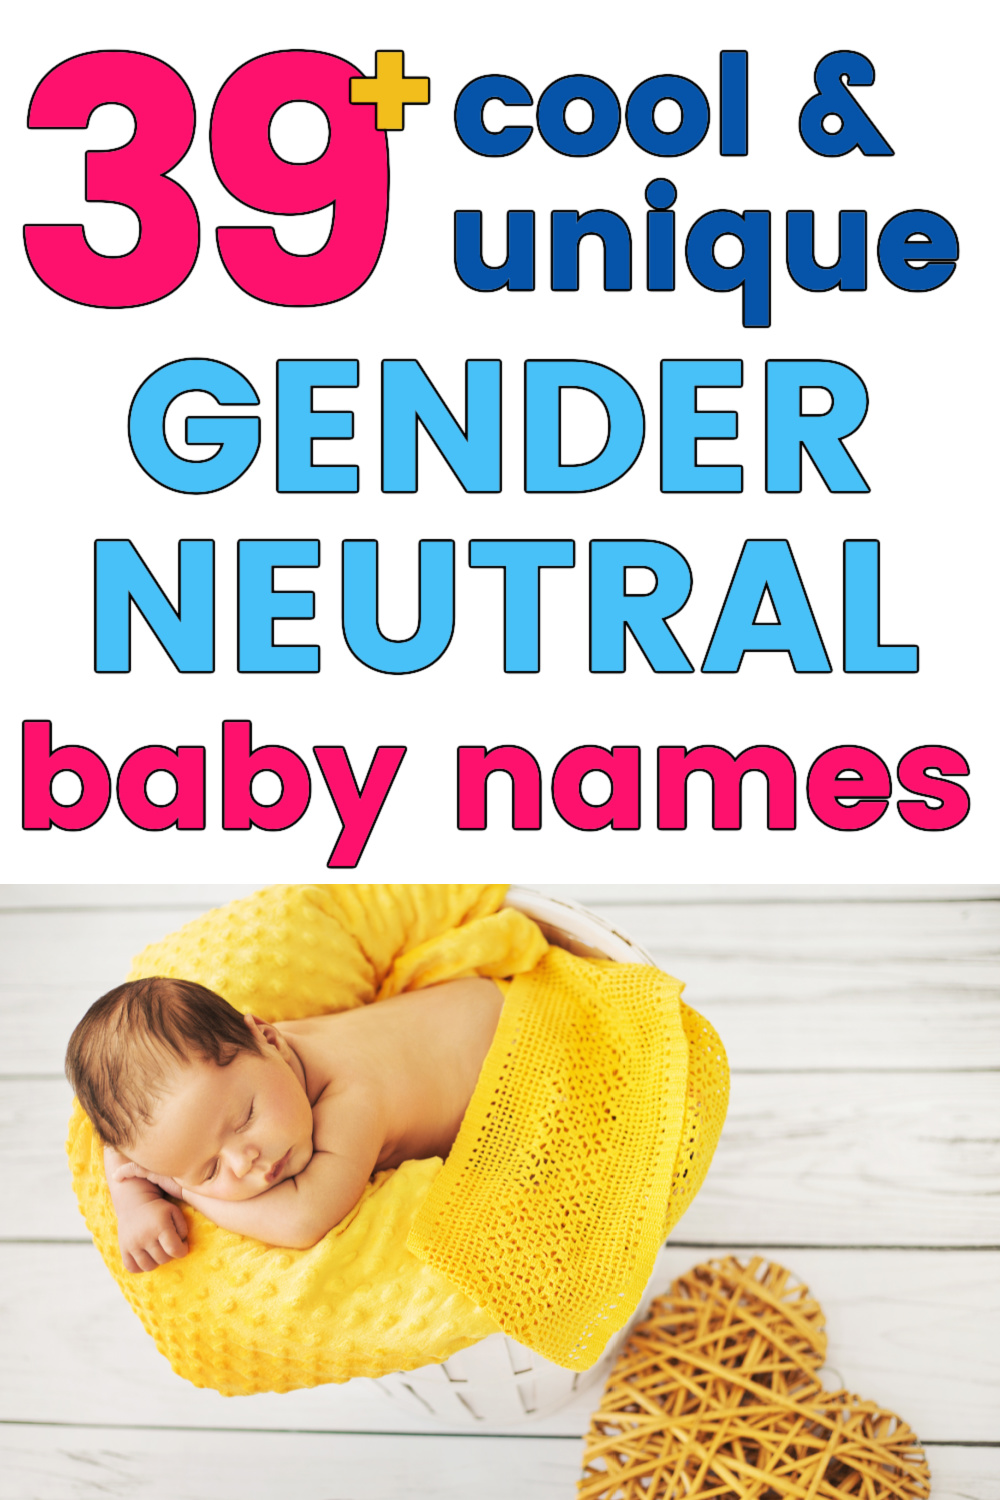 """baby sleeping in basket on top of yellow,  blanket with text overlay """"39 cool and unique gender neutral baby names"""""""